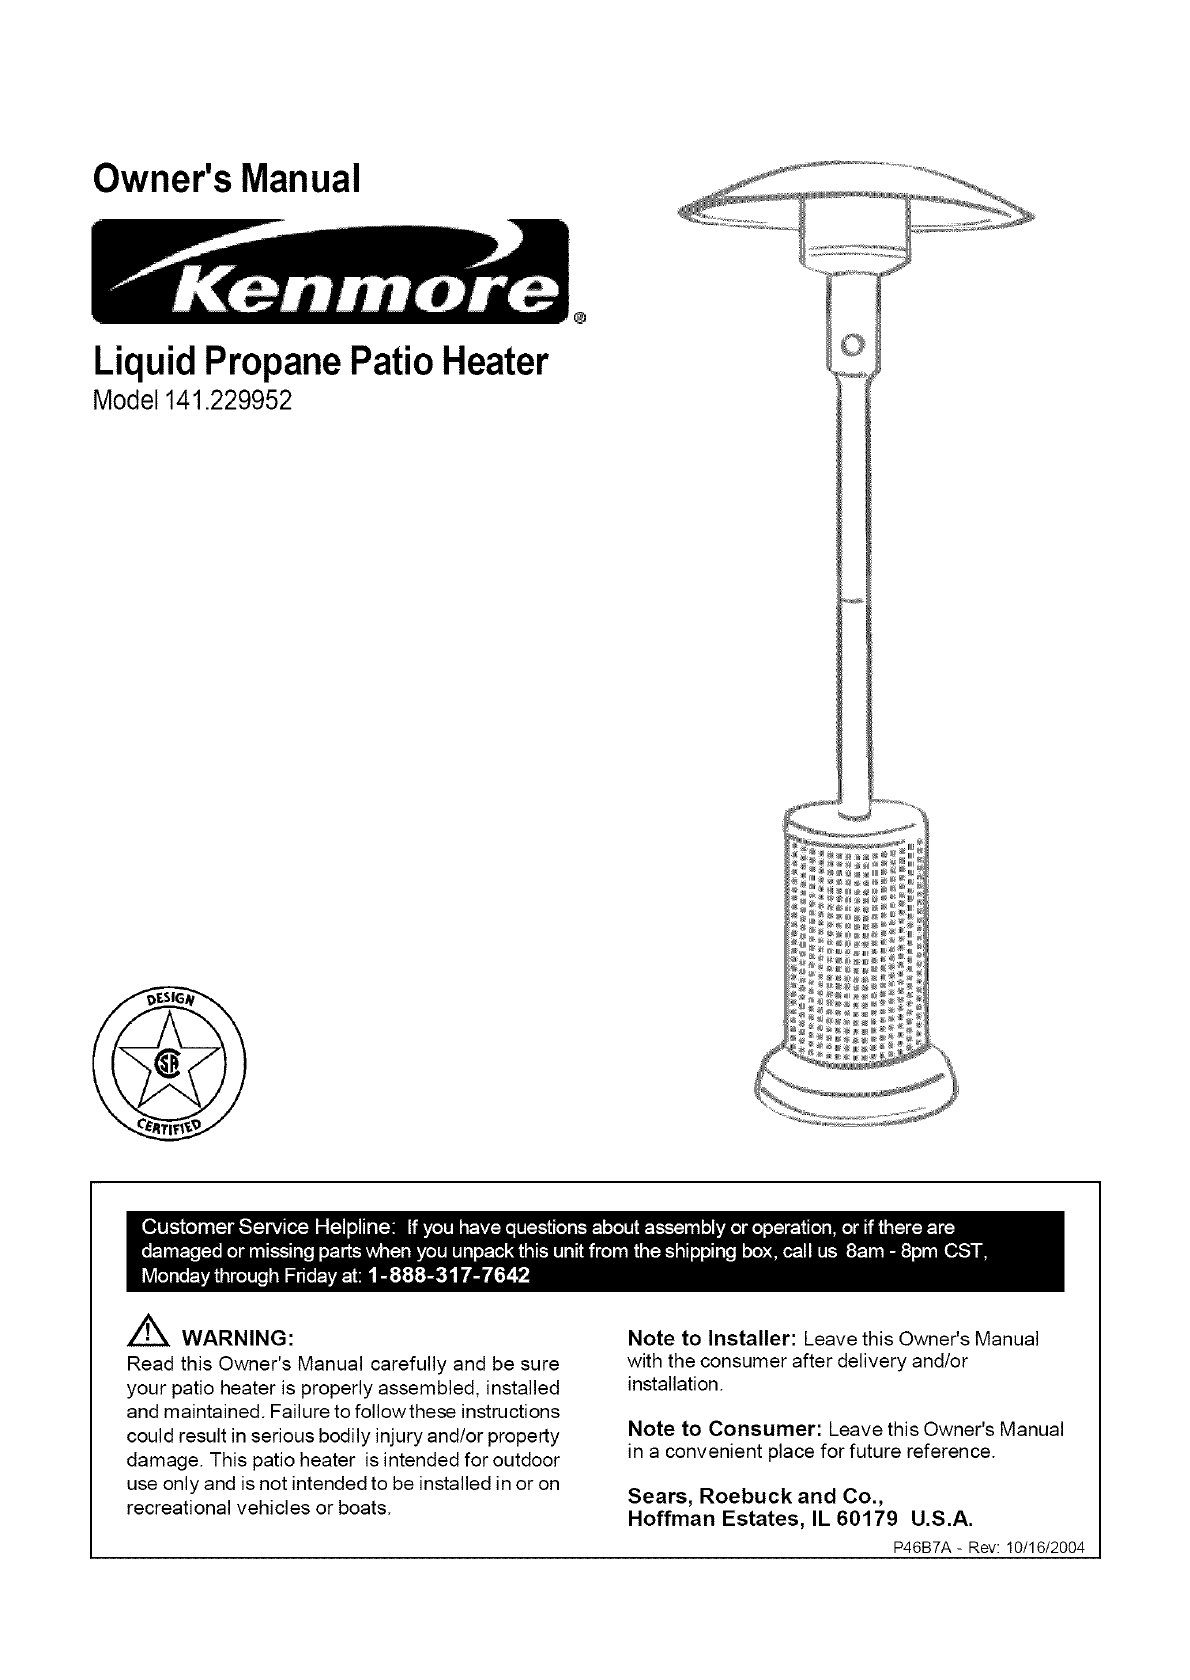 kenmore patio heater 141 229952 user guide manualsonline com rh lawnandgarden manualsonline com Charmglow Patio Heater Owner's Manual Gas Manual Propane Owners Patio Model Heater Sf87phlp